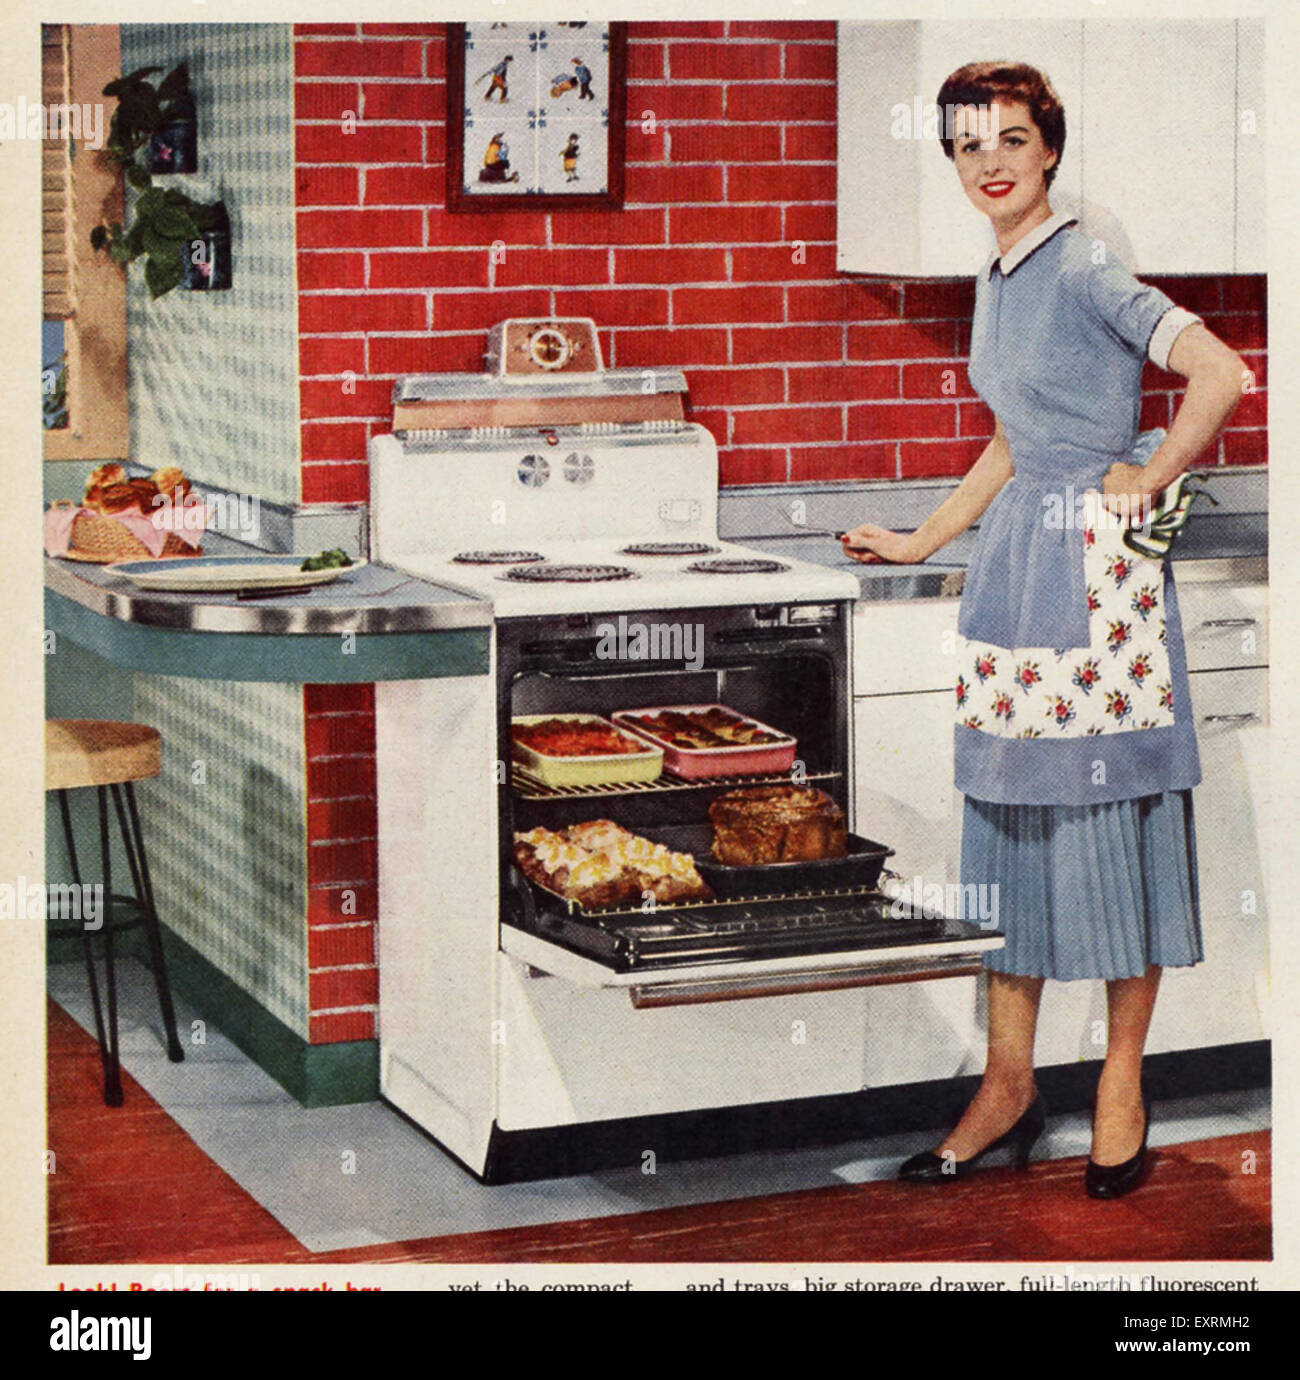 Vintage Schürze Küche 1950s Usa Housewife Cooking Magazine Advert Detail Stock